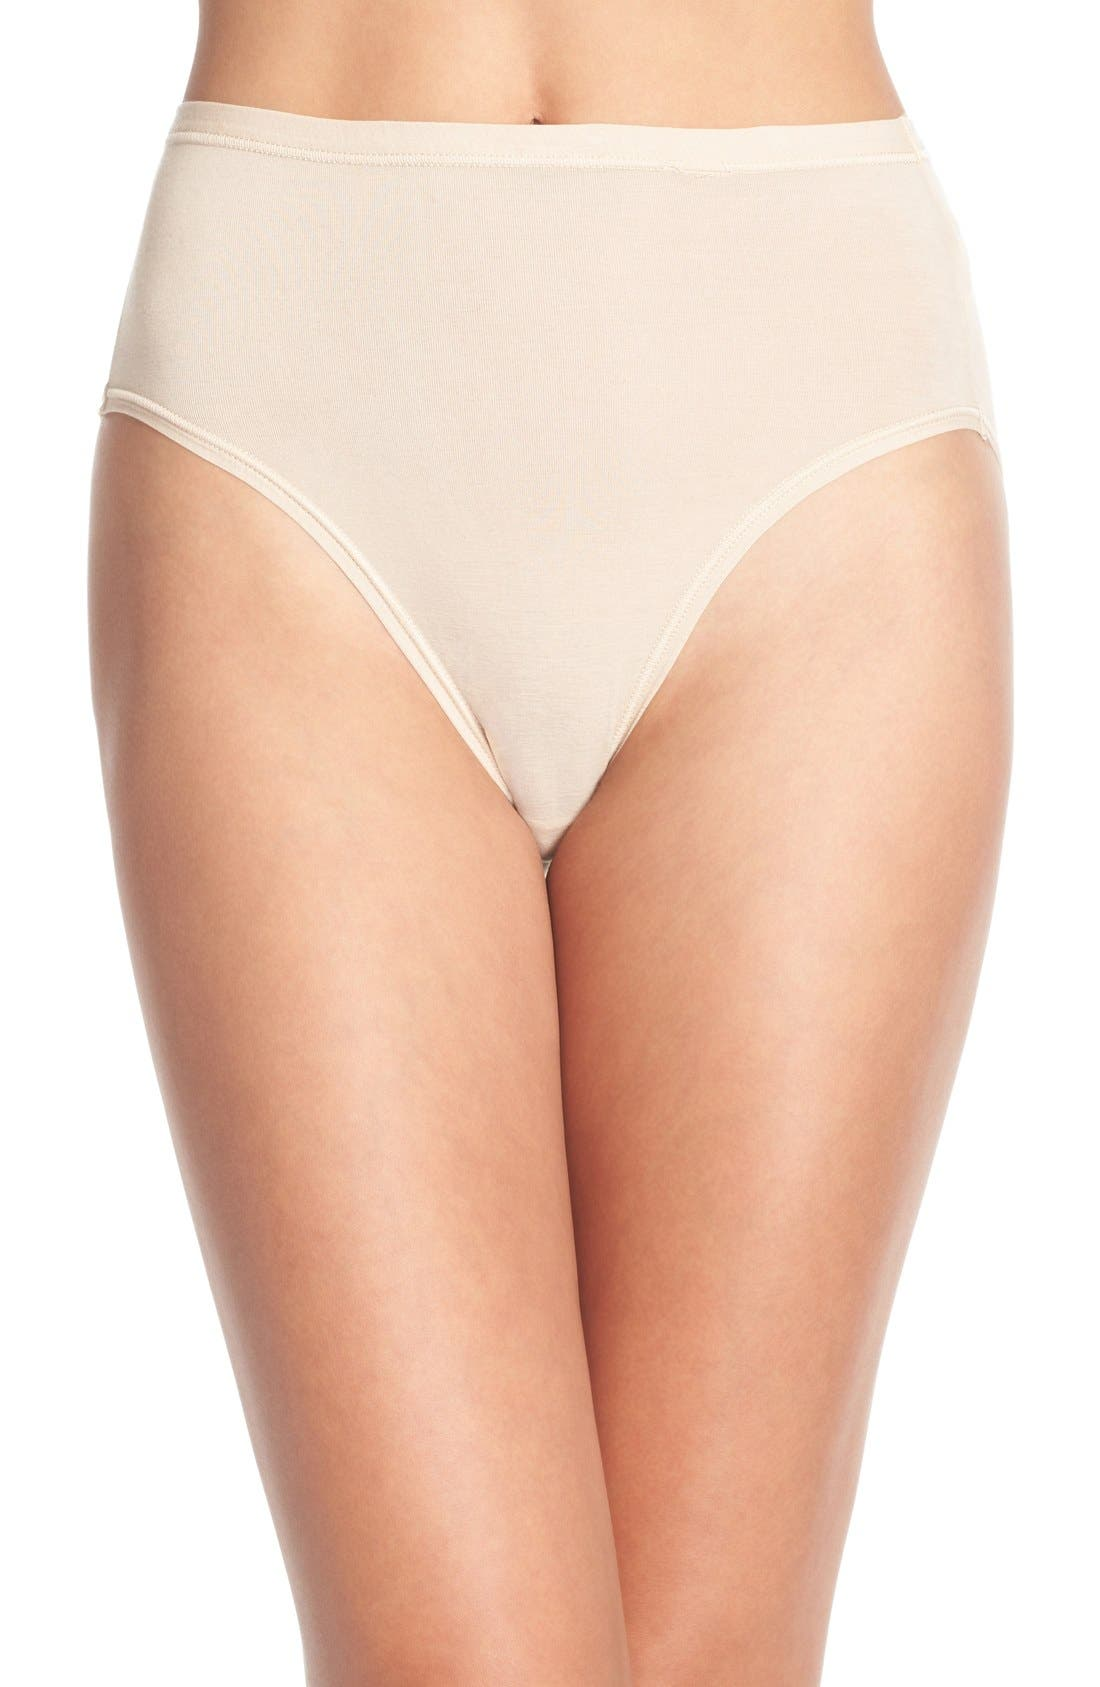 B Fitting High Cut Briefs,                         Main,                         color, NUDE